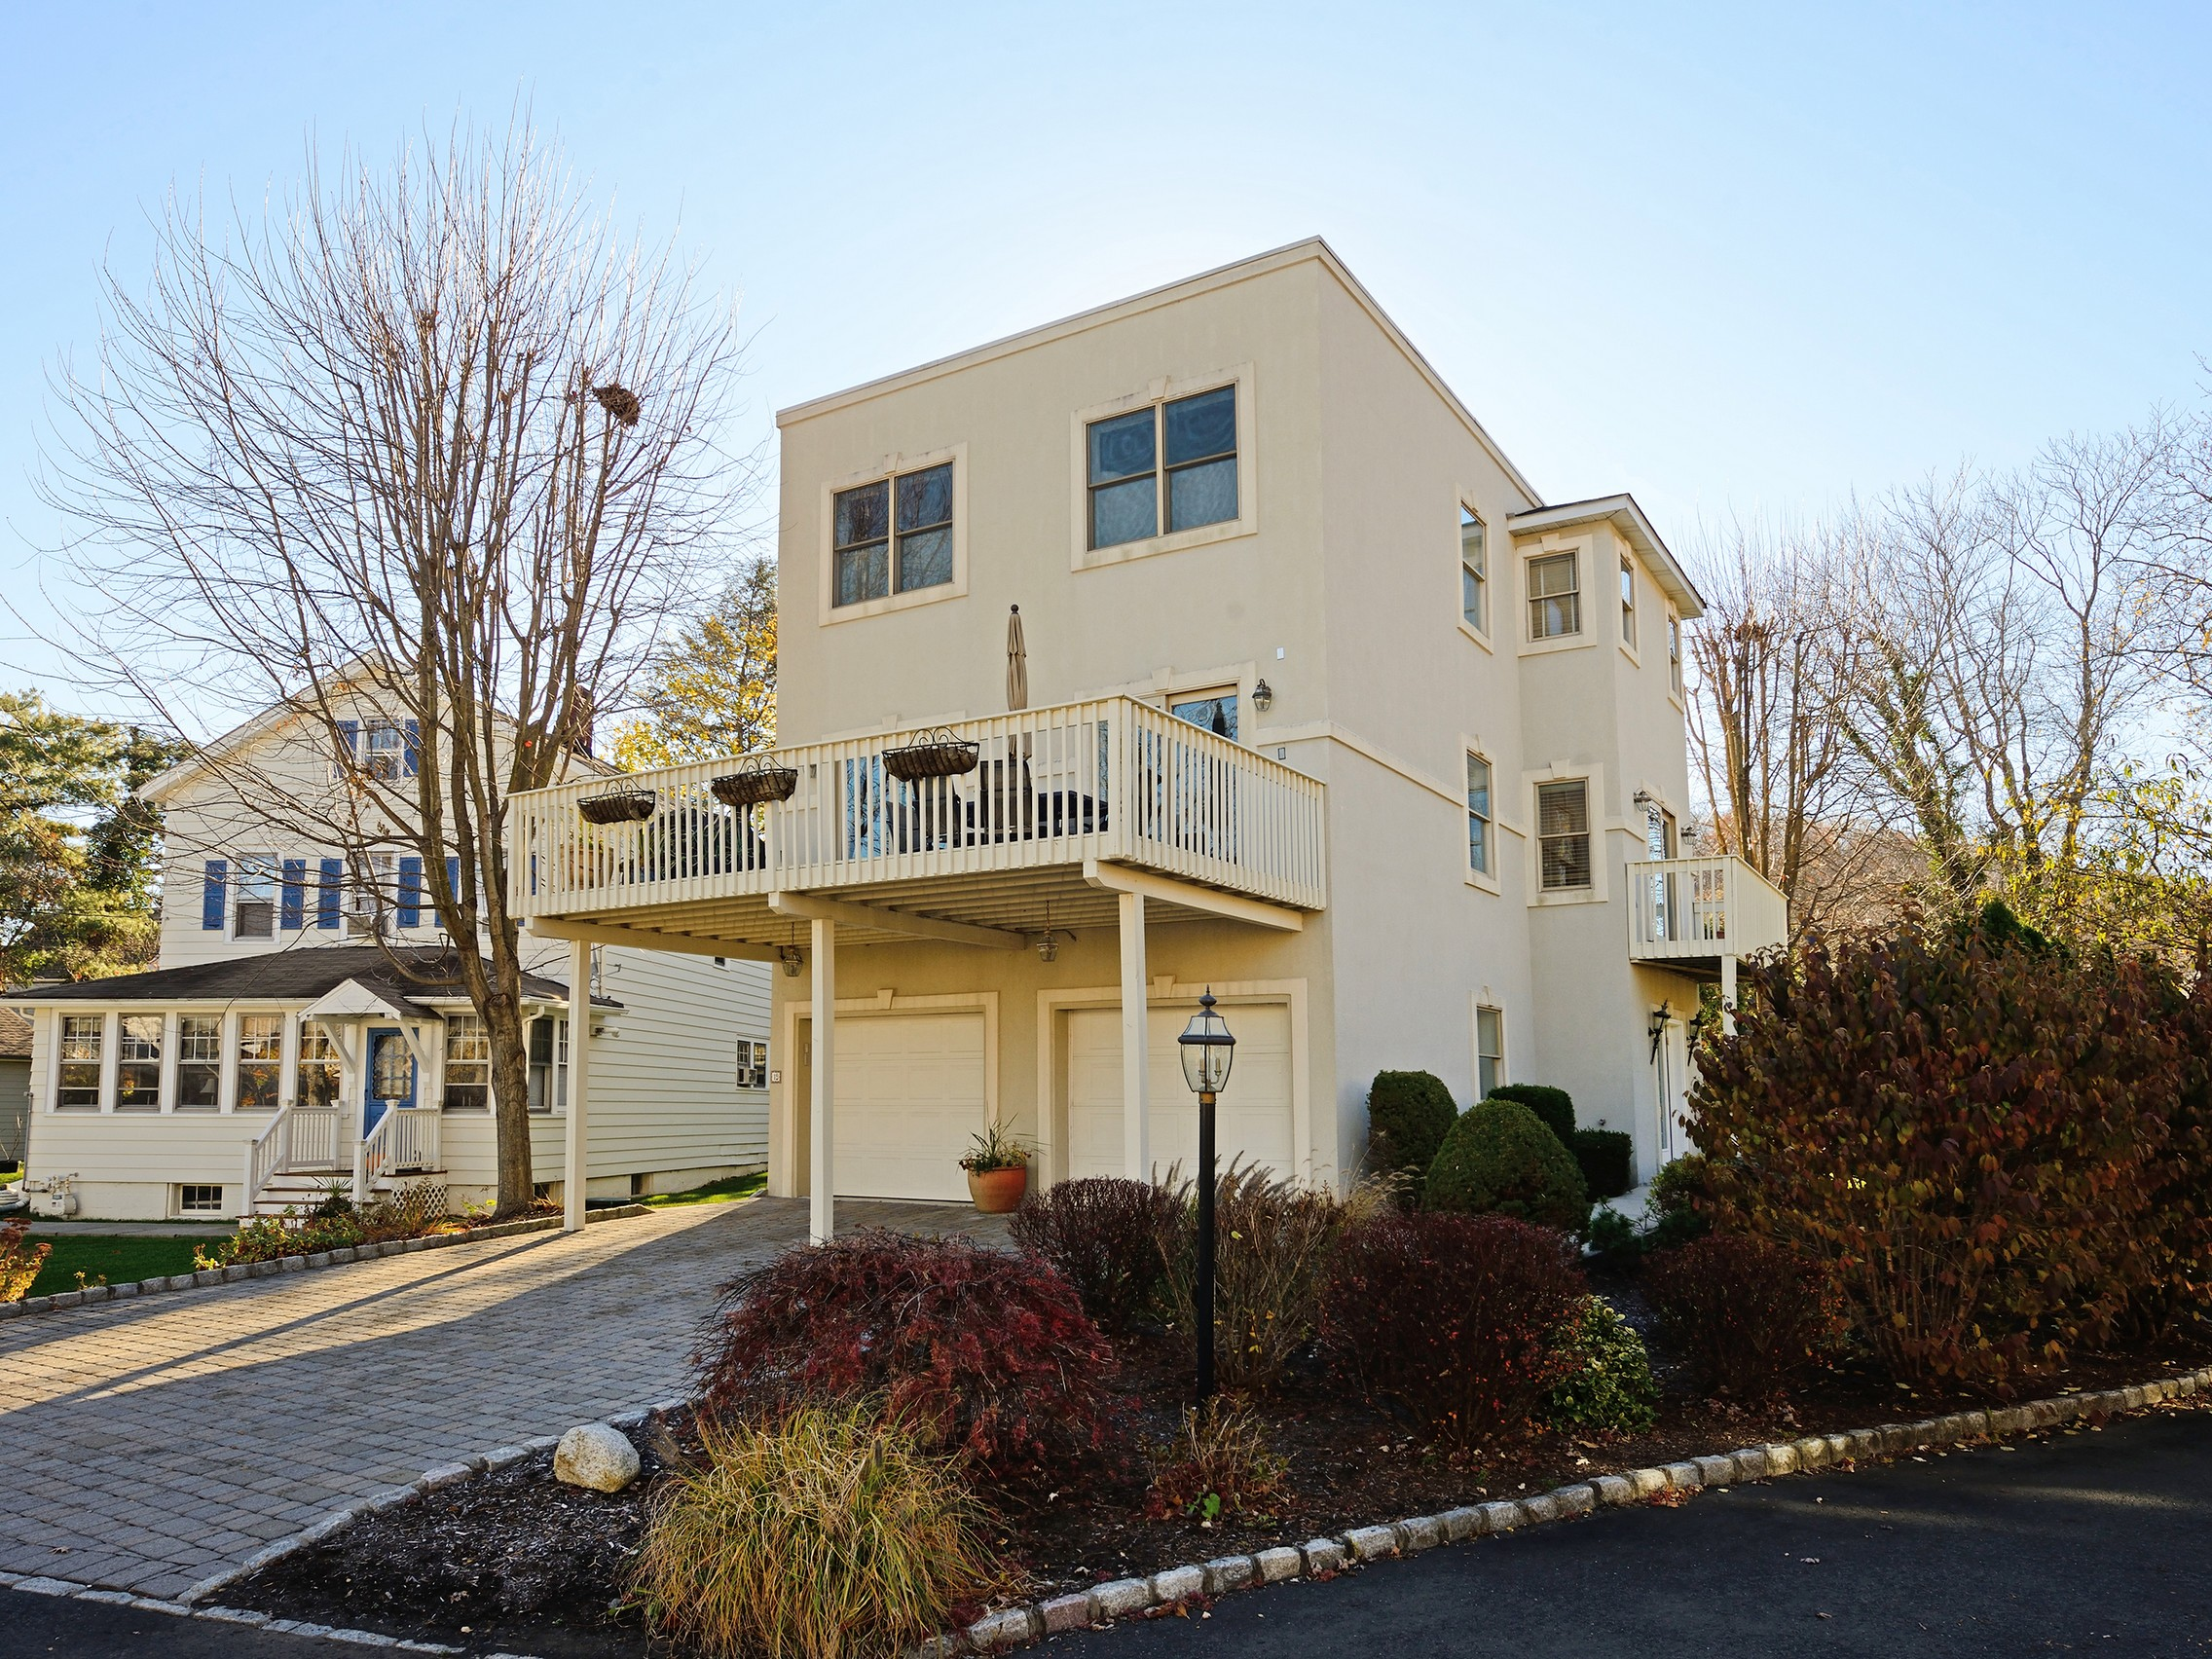 Single Family Home for Sale at Contemporary in Private Location 19 Liberty St Piermont, New York 10968 United States